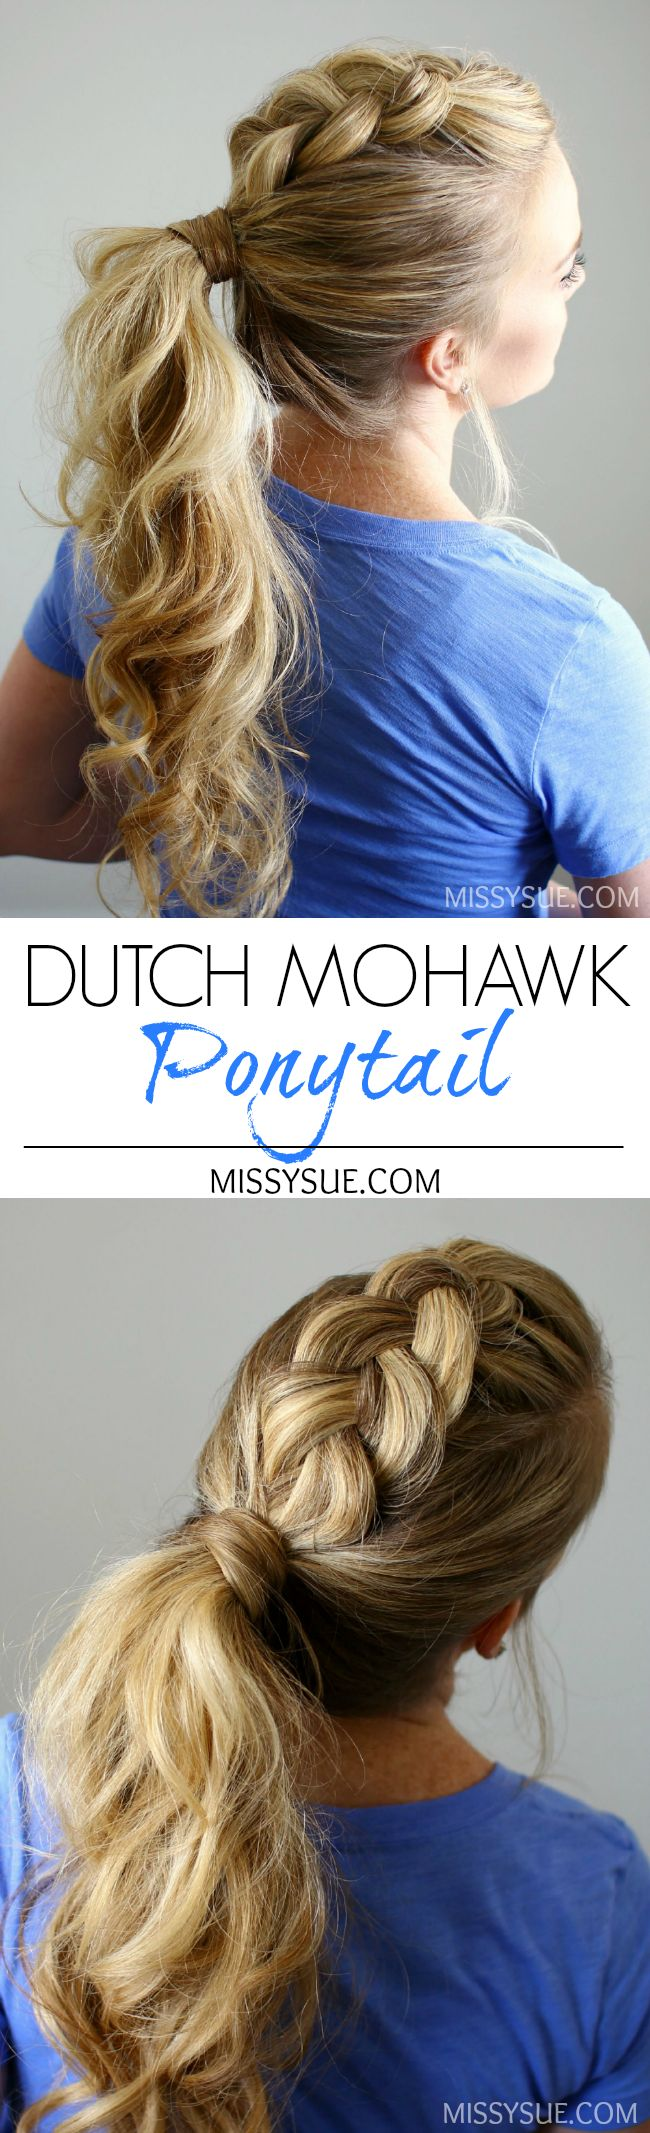 dutch-mohawk-ponytail-tutorial-missysue